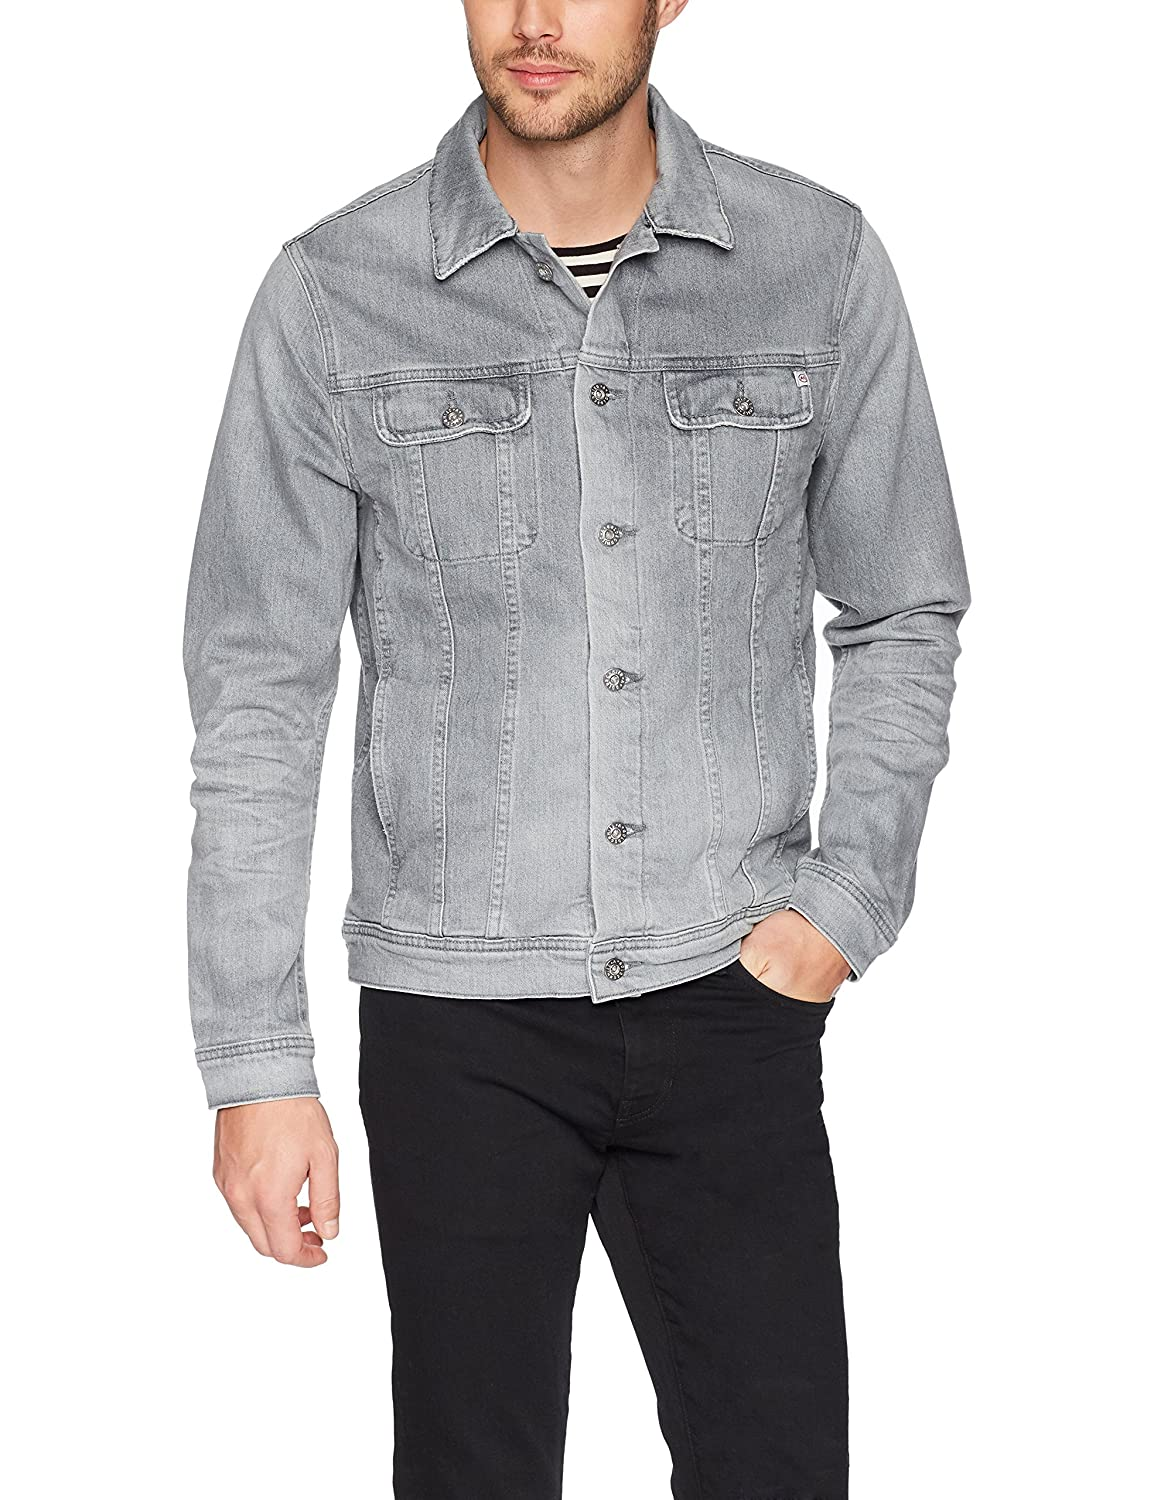 Ag Adriano Goldschmied Men's Dart Long Sleeve Mason Denim Jacket by Ag Adriano Goldschmied